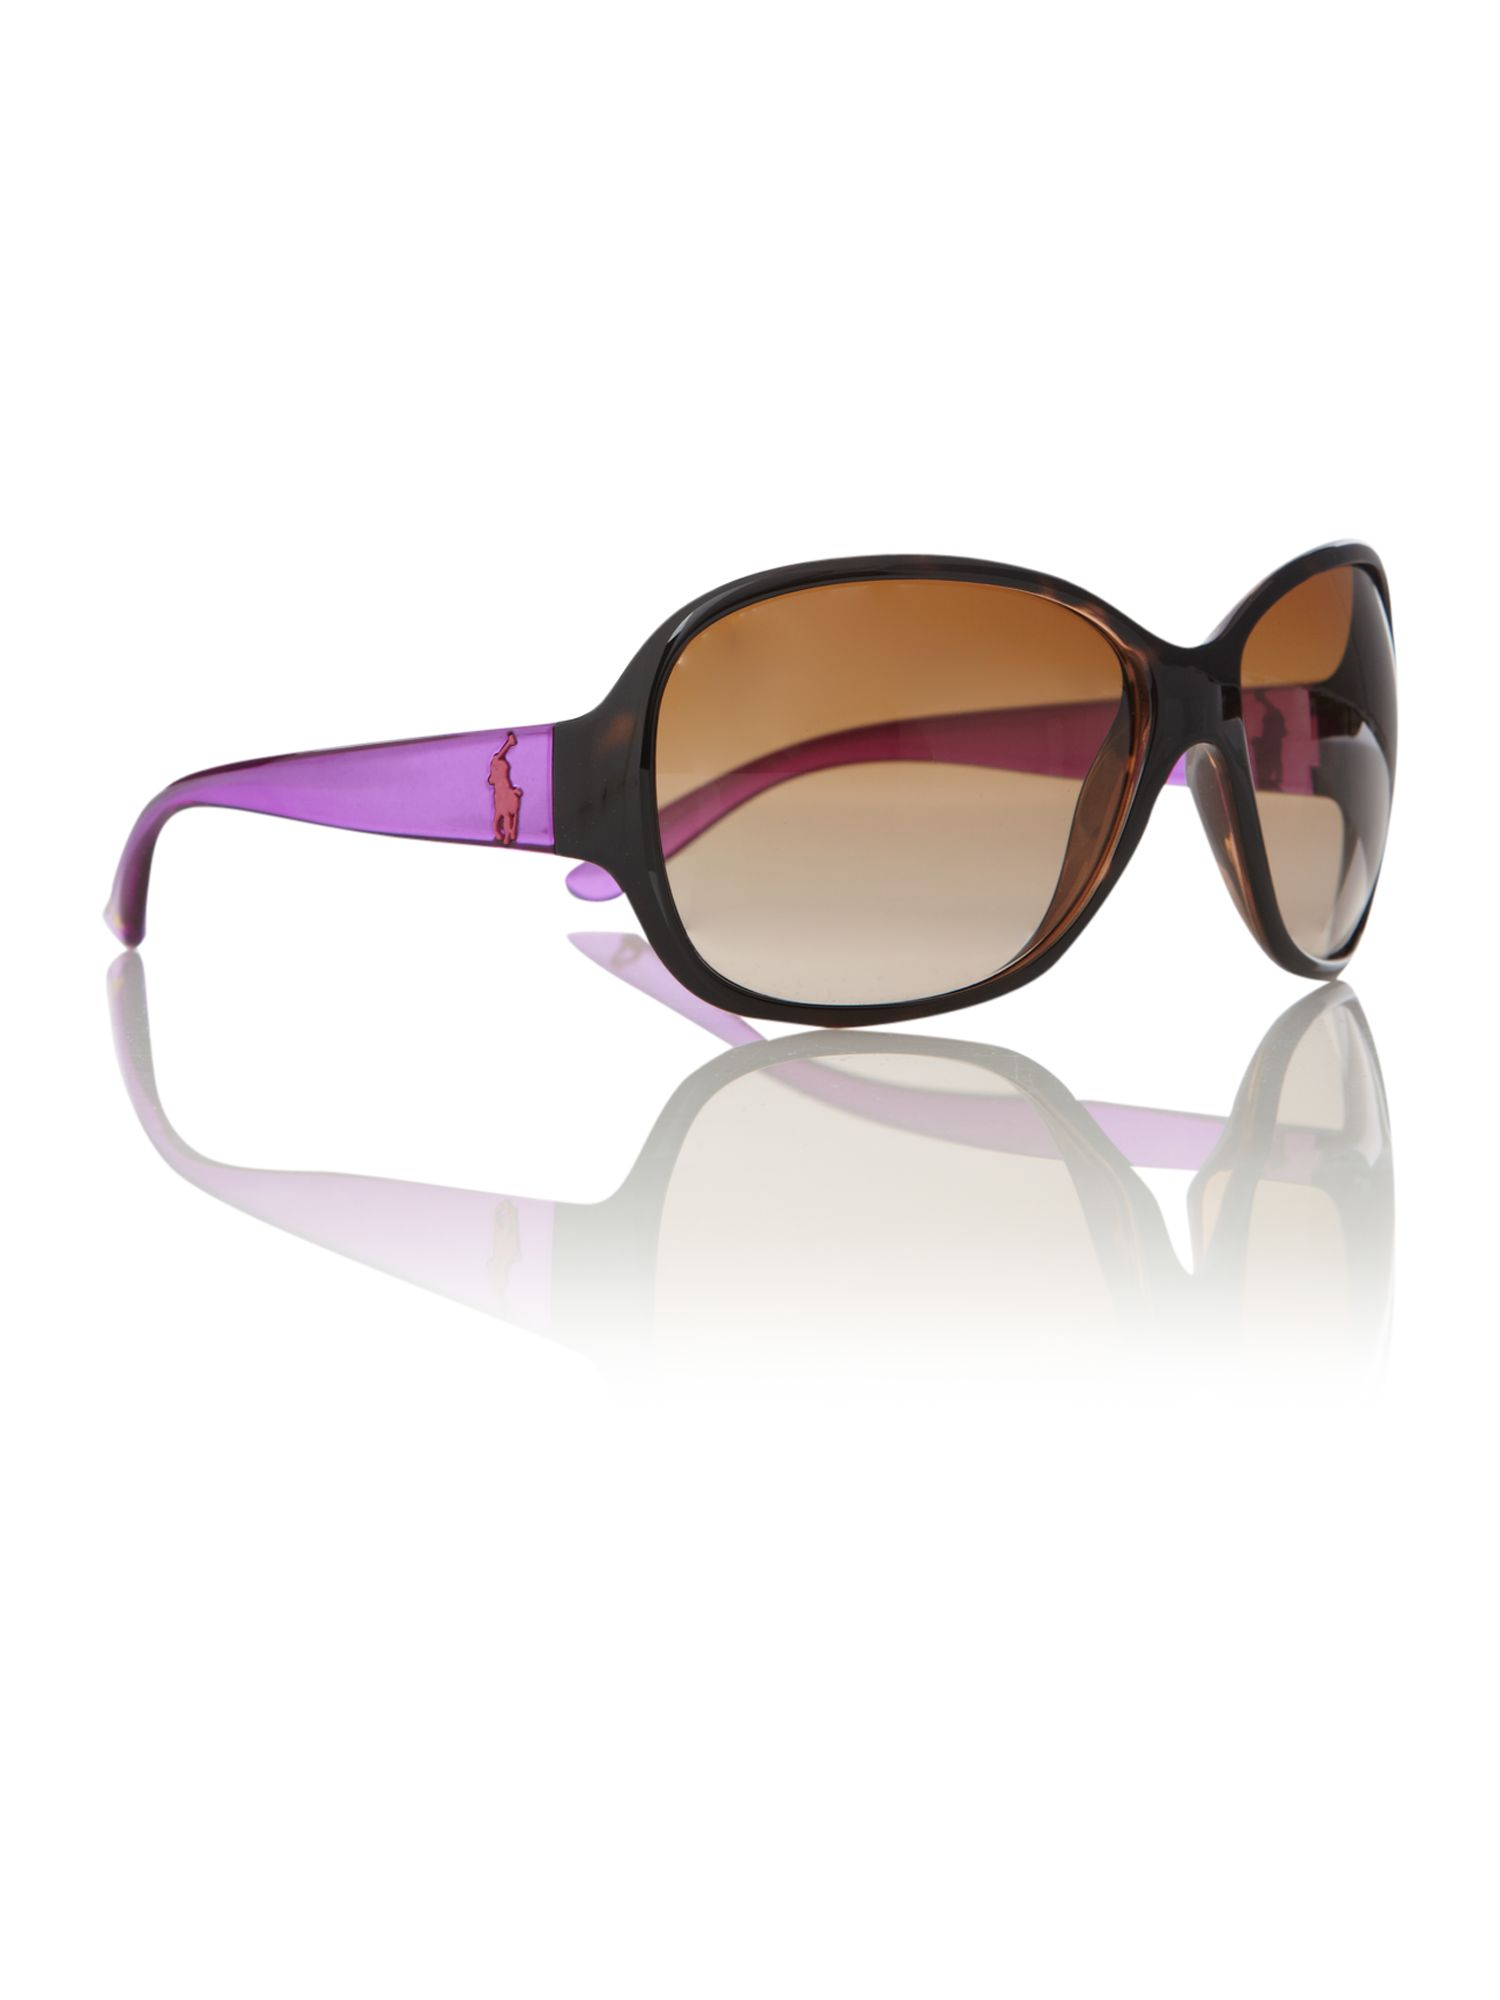 Ladies RL8090 Big Pony Havana Sunglasses